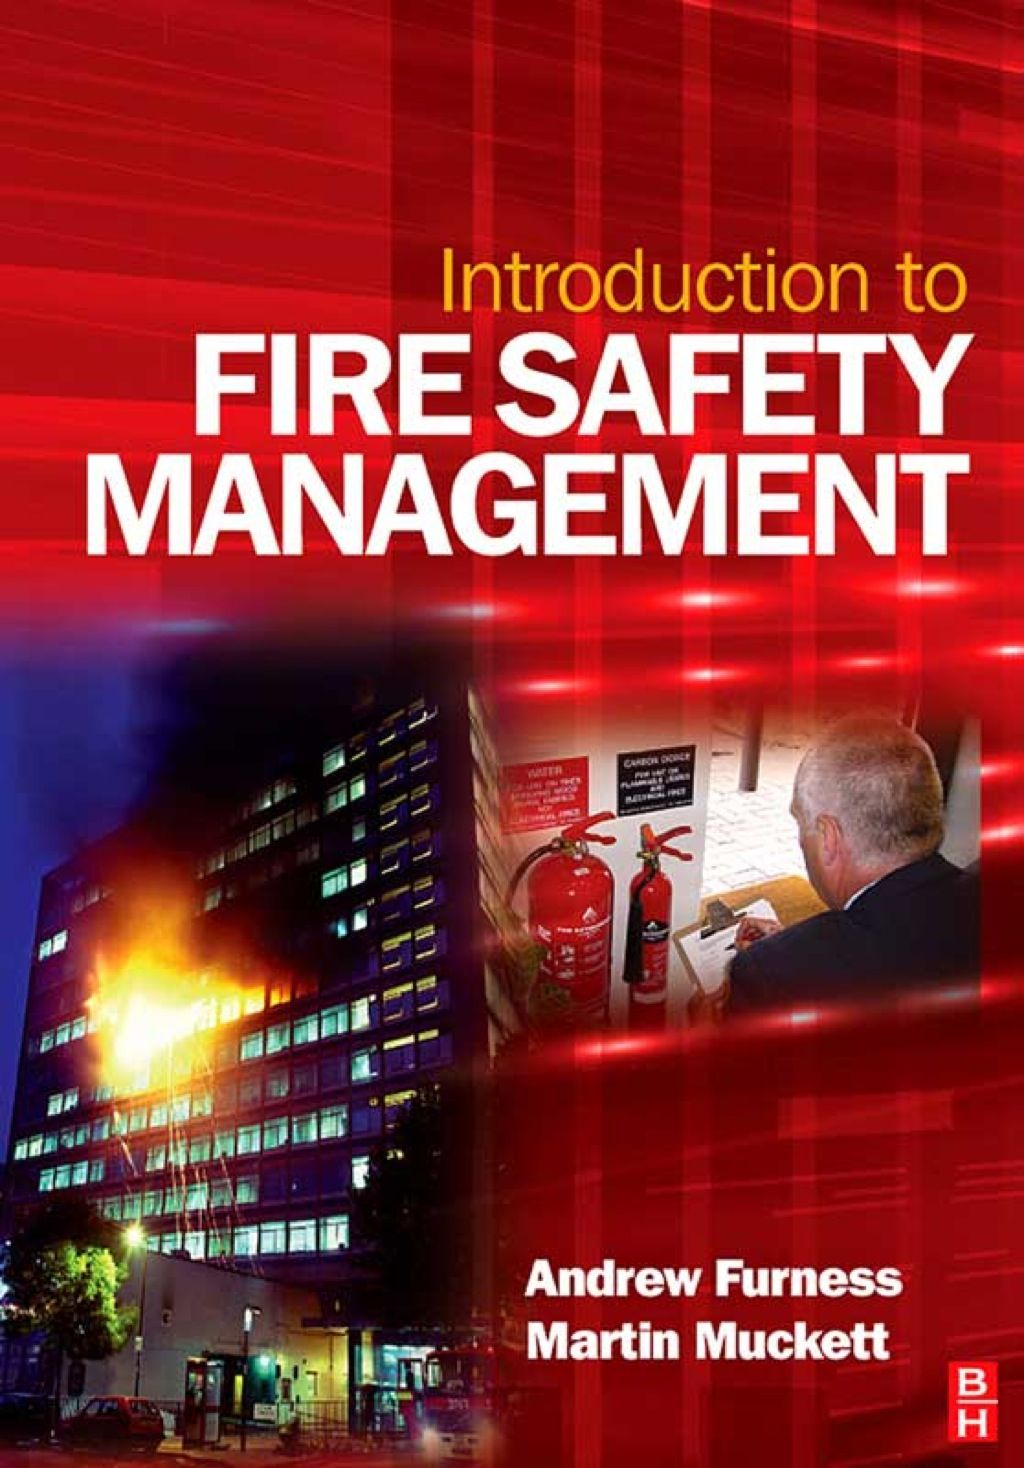 Introduction to Fire Safety Management (eBook Rental) in